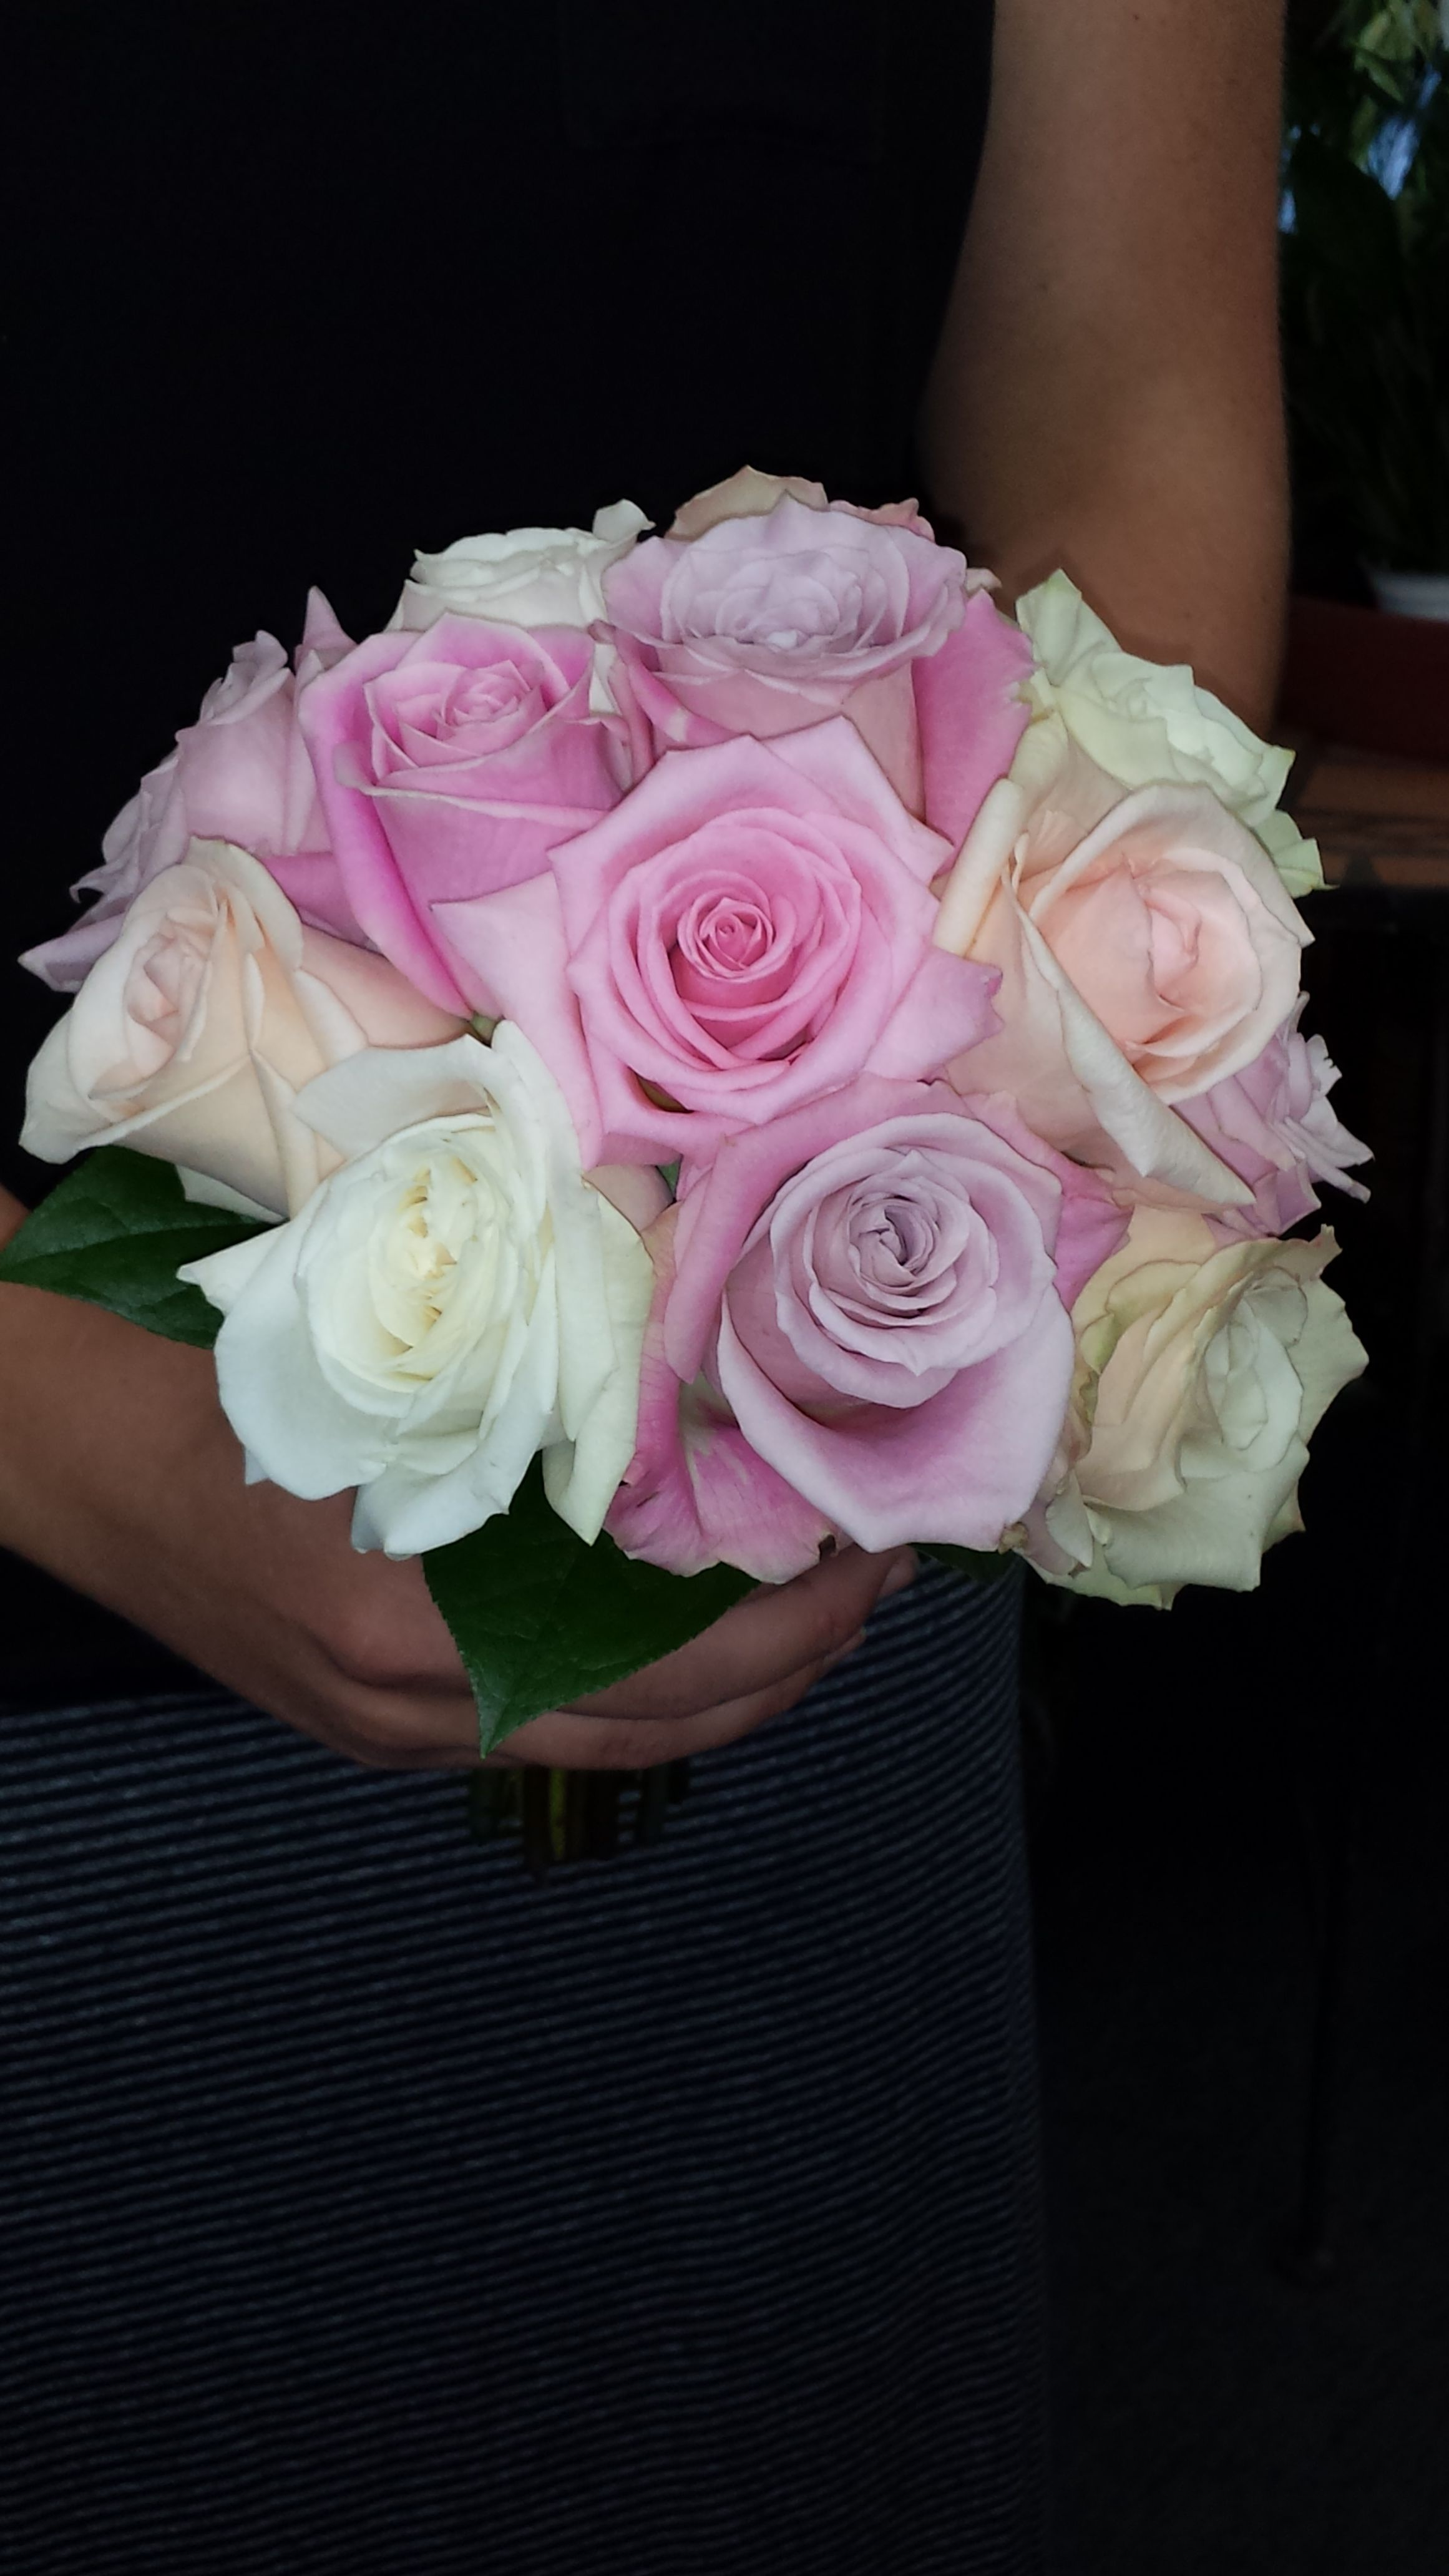 Bridesmaid bouquet of different shades of pink and white roses bridesmaid bouquet of different shades of pink and white roses flowers by candlelight floral izmirmasajfo Gallery